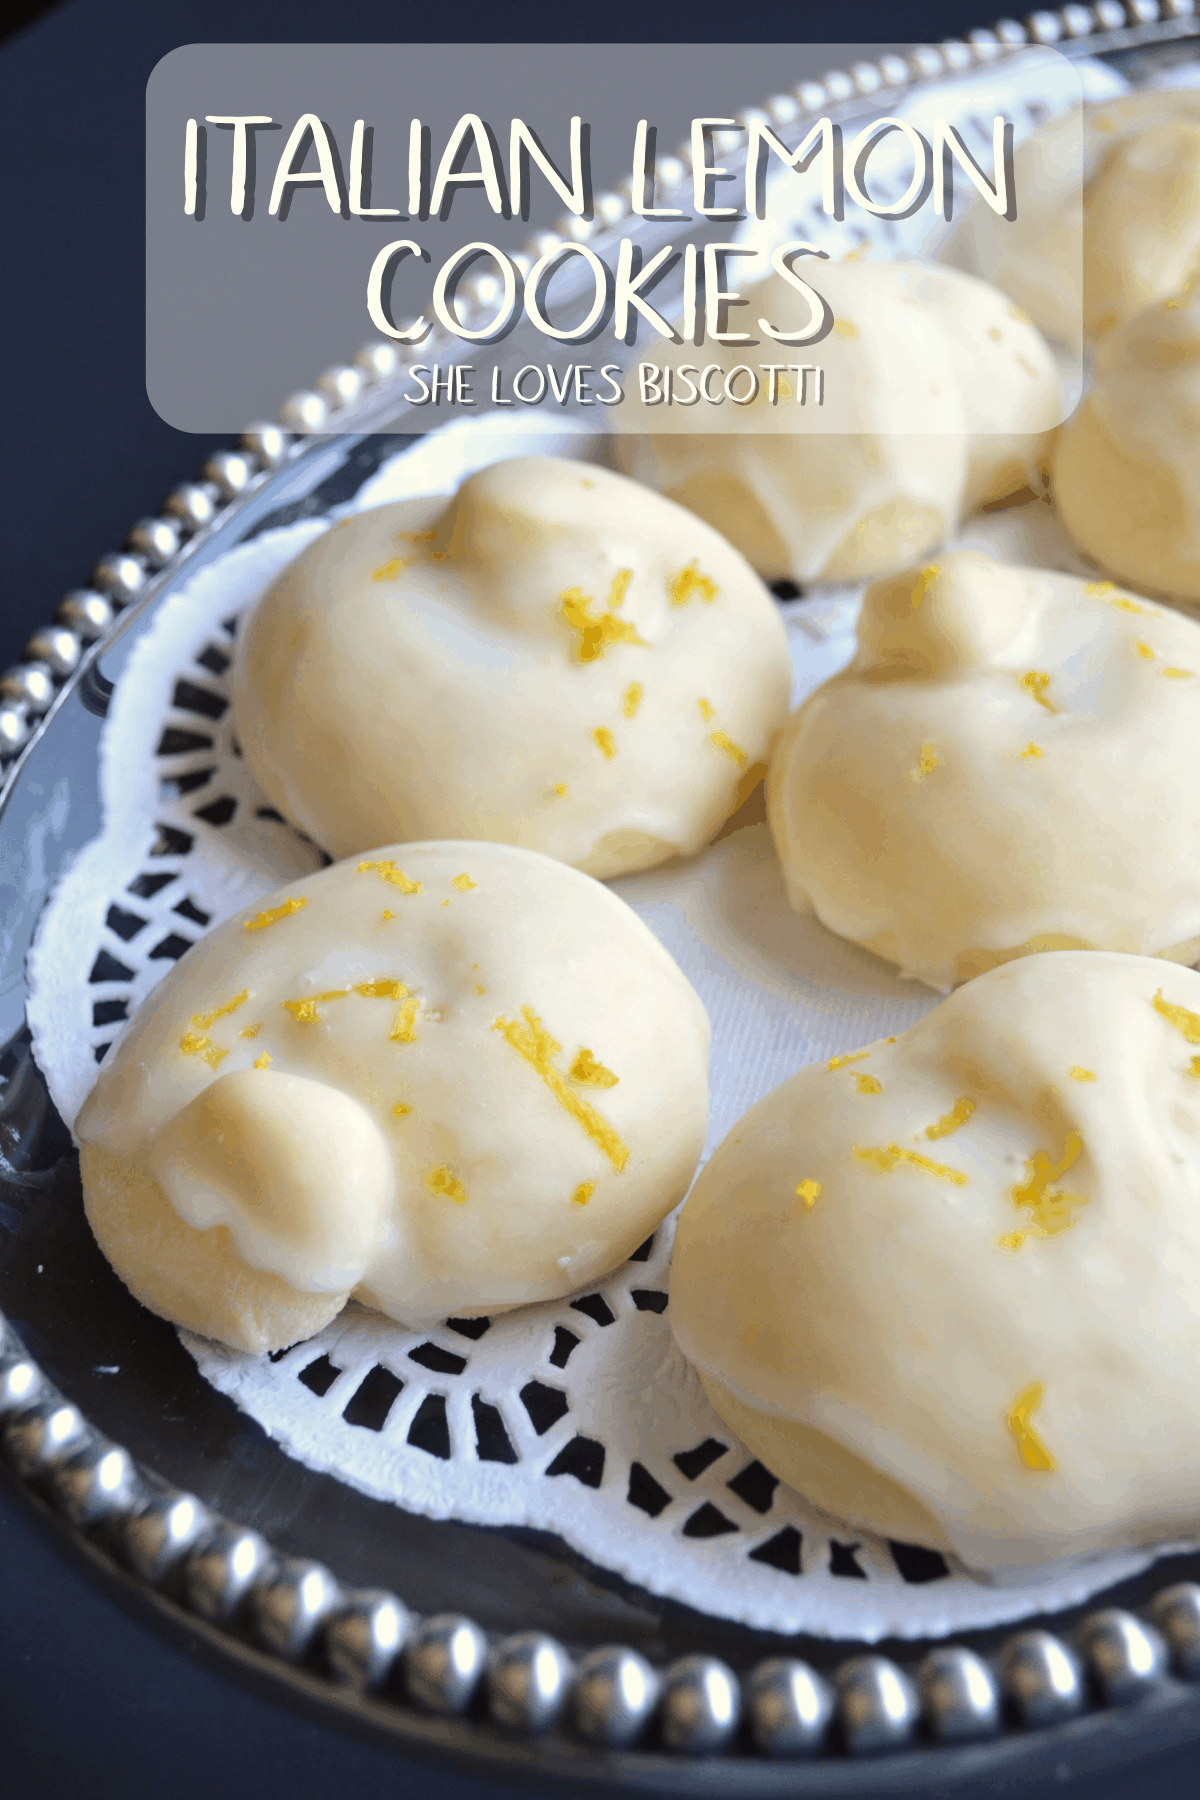 Whether you call them Tarallucci or Italian Lemon Cookies, they make the best Christmas cookies! Soft and cake-like, with a refreshing burst of lemon flavor. #shelovesbiscotti #Italiancookies #easycookierecipe #easycookie #lemoncookies #Christmascookie #ItalianChristmascookies #Italianlemoncookies